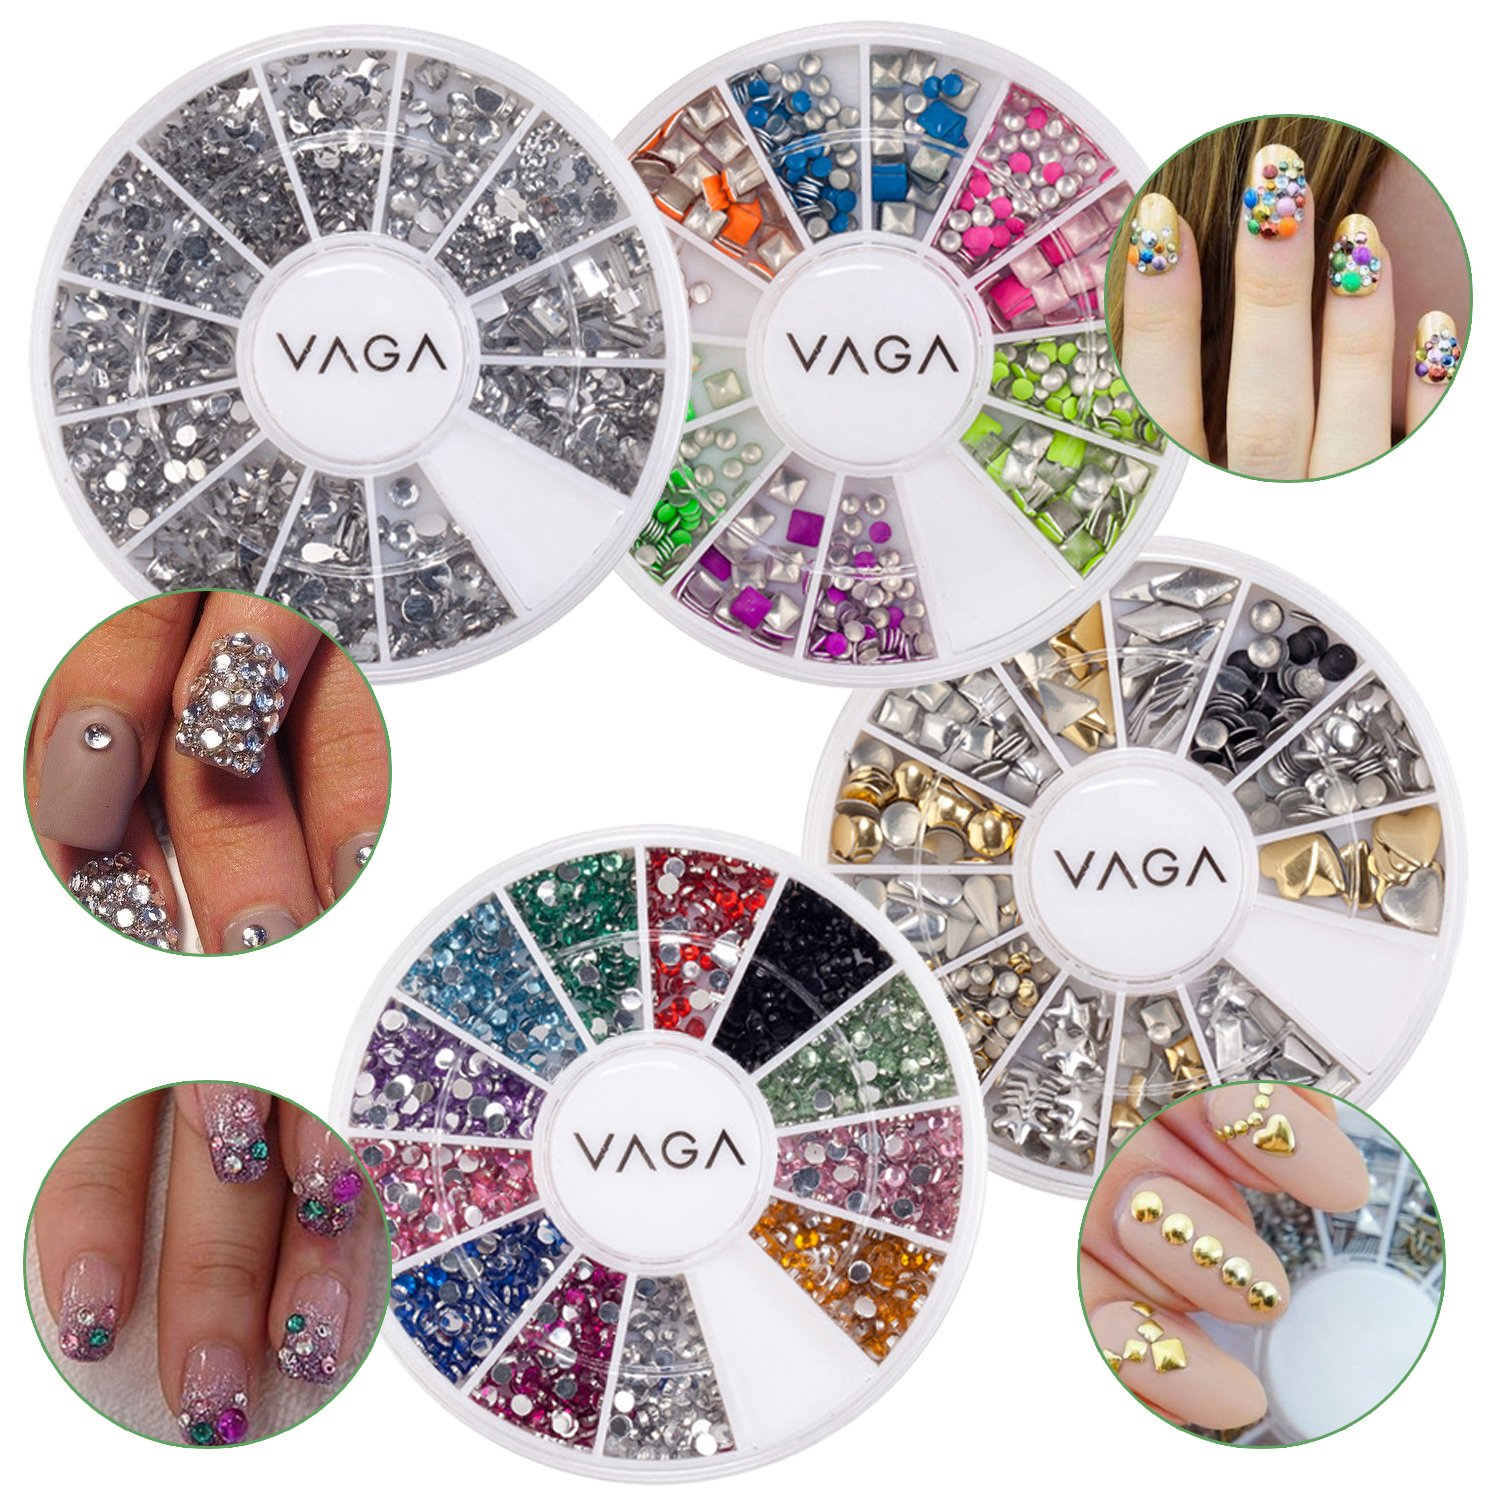 Great Value And Quality Professional Nail Art 3D Decorations Set With Dazzling Golden And Silver Rivet Style Metal Studs, Colourful Glowing Neon Studs In 2 Shapes And Wheel With Mixed Colours Rhinestones / Crystals / Gemstones By VAGA